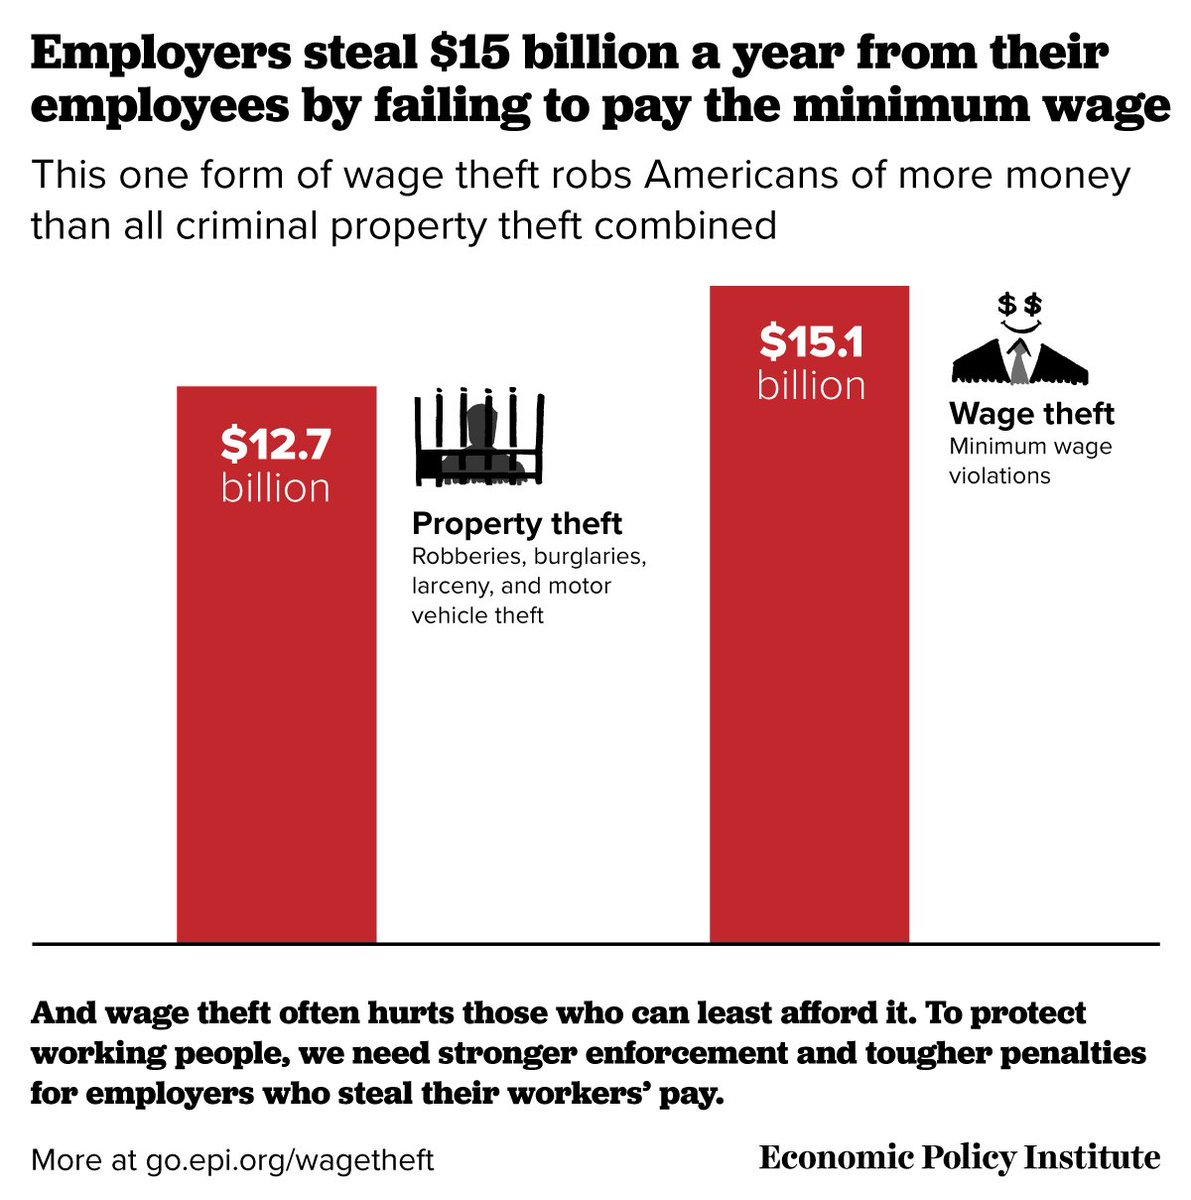 #WageTheft is a bigger problem than property theft in America. https://t.co/SzvEM0D6bQ https://t.co/UwkhuSKMDH